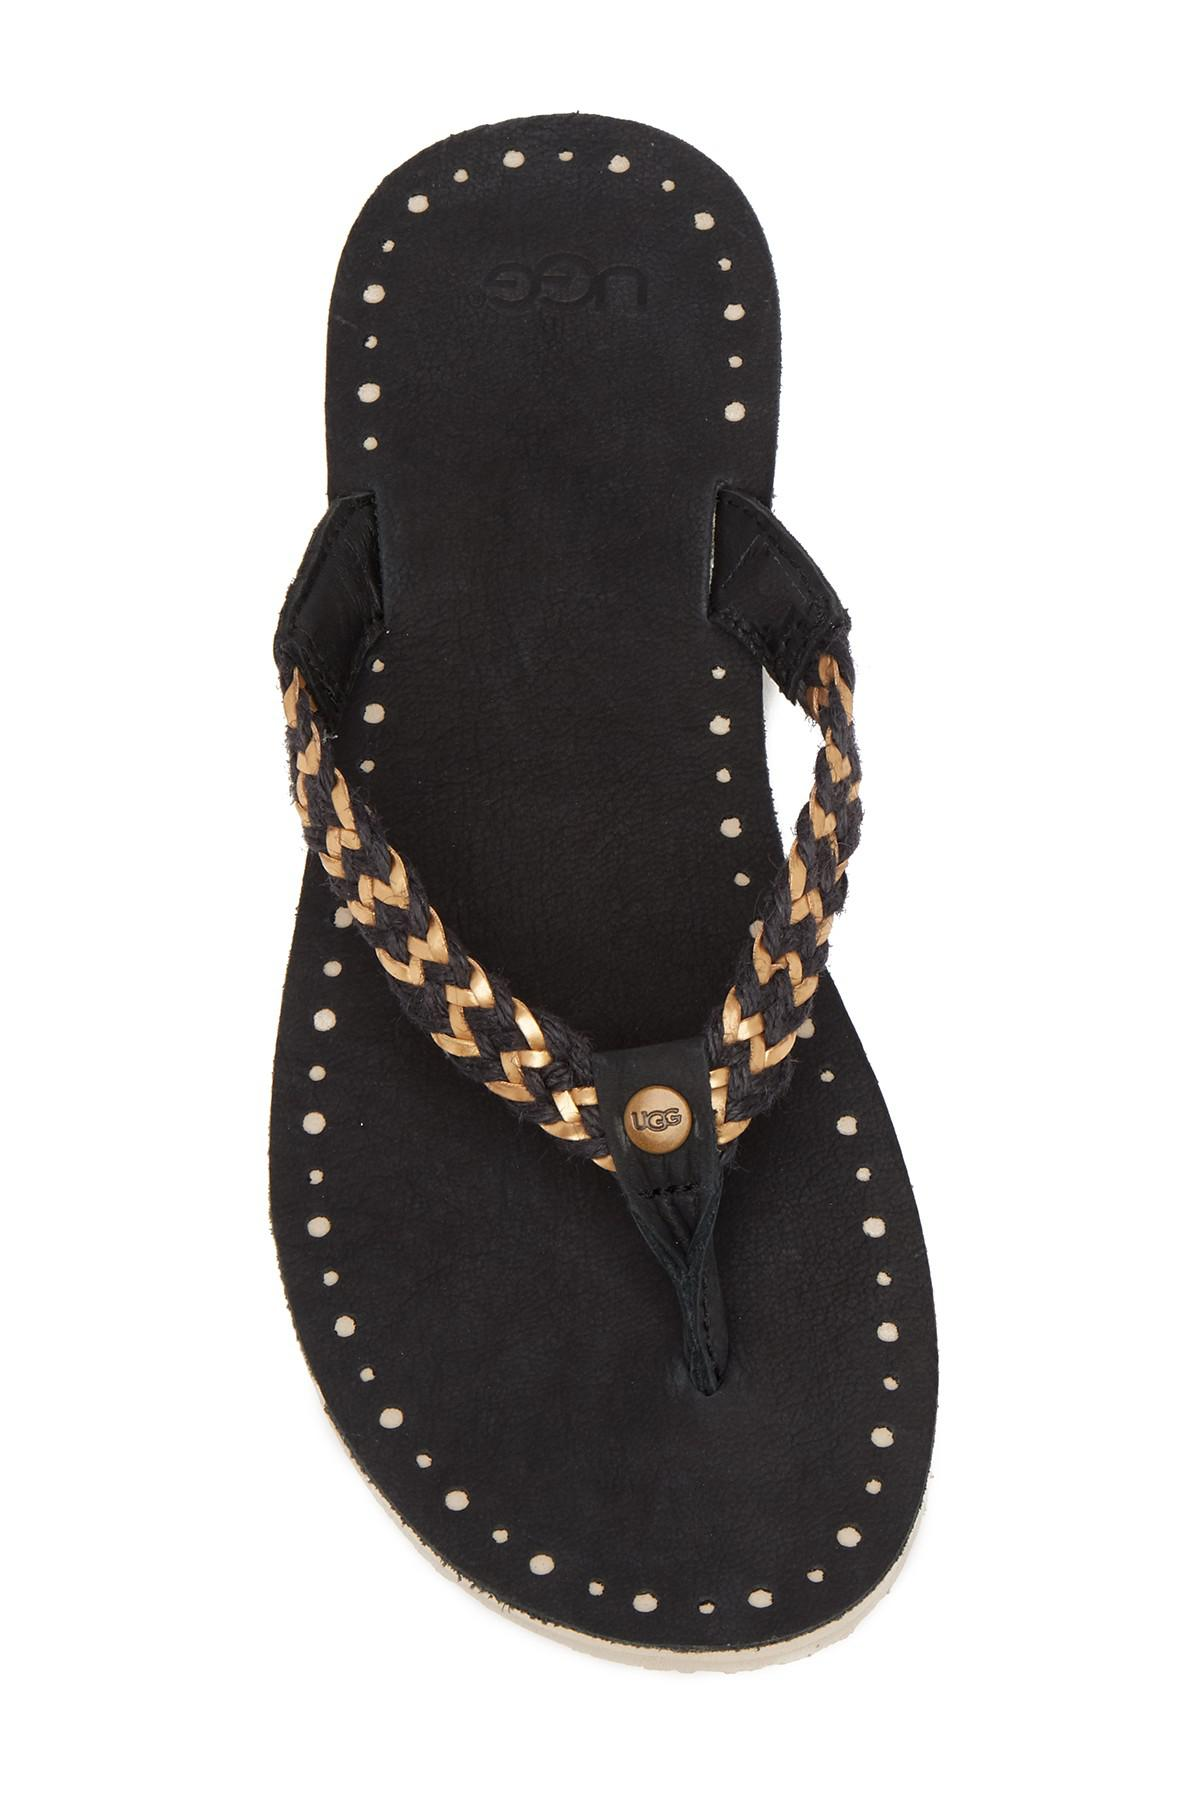 f0c52c2c460 Ugg Black Navie Ii Braided Jute Leather Sandal